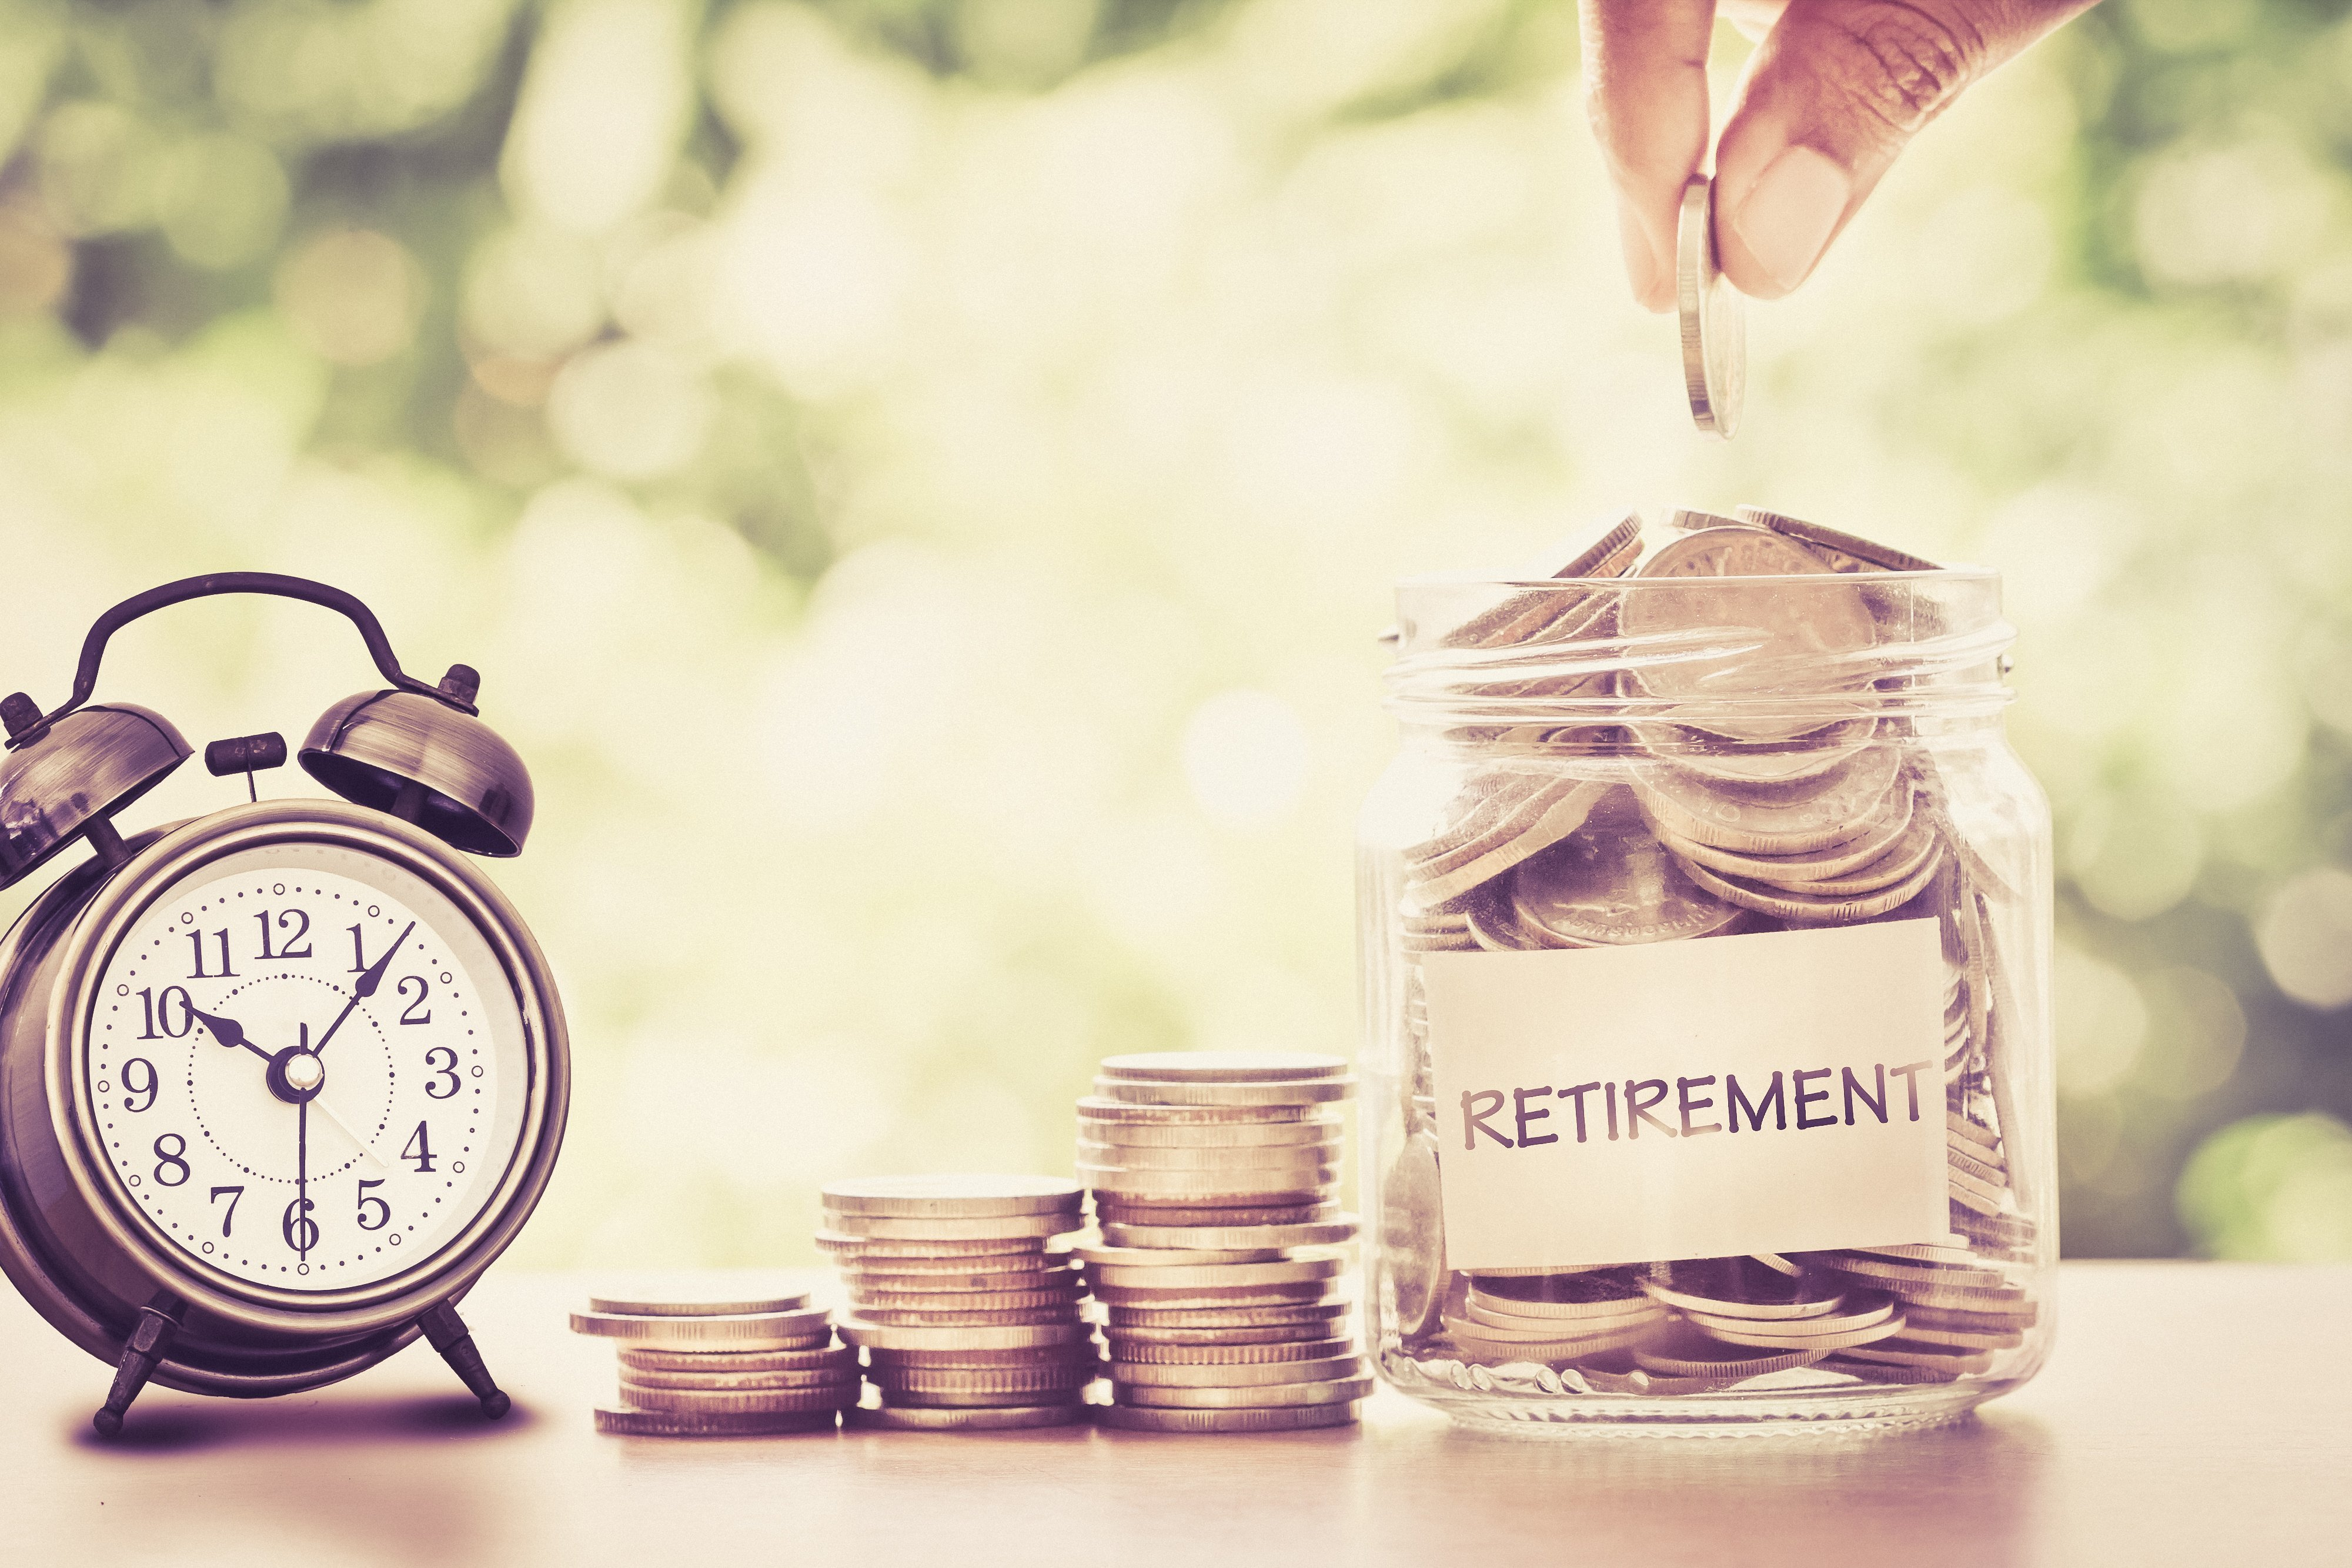 Jar of money for retirement | Photo: Shutterstock